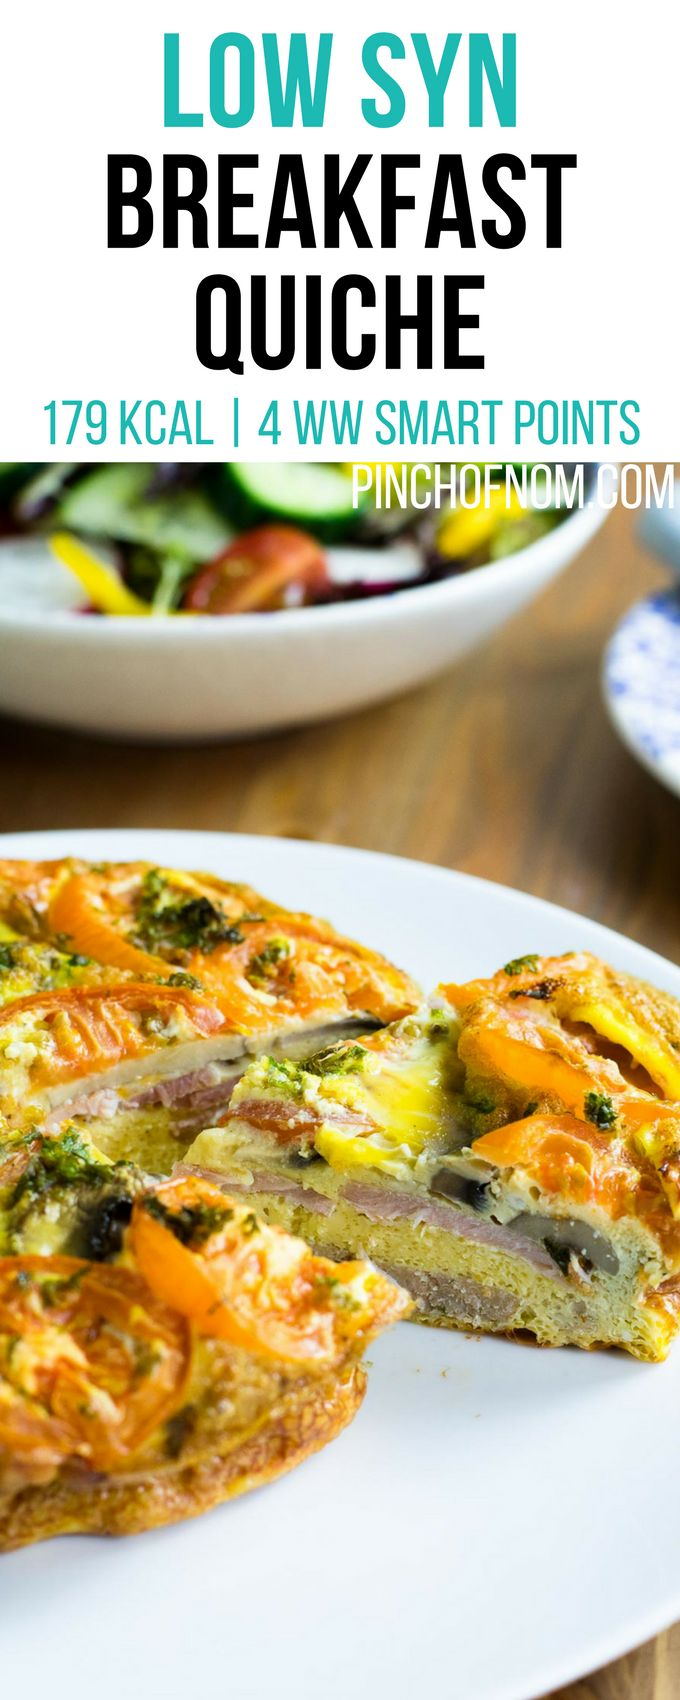 Low Syn Breakfast Quiche | Pinch Of Nom Slimming World Recipes     179 kcal | 0.5 Syn | 4 Weight Watchers Smart Points